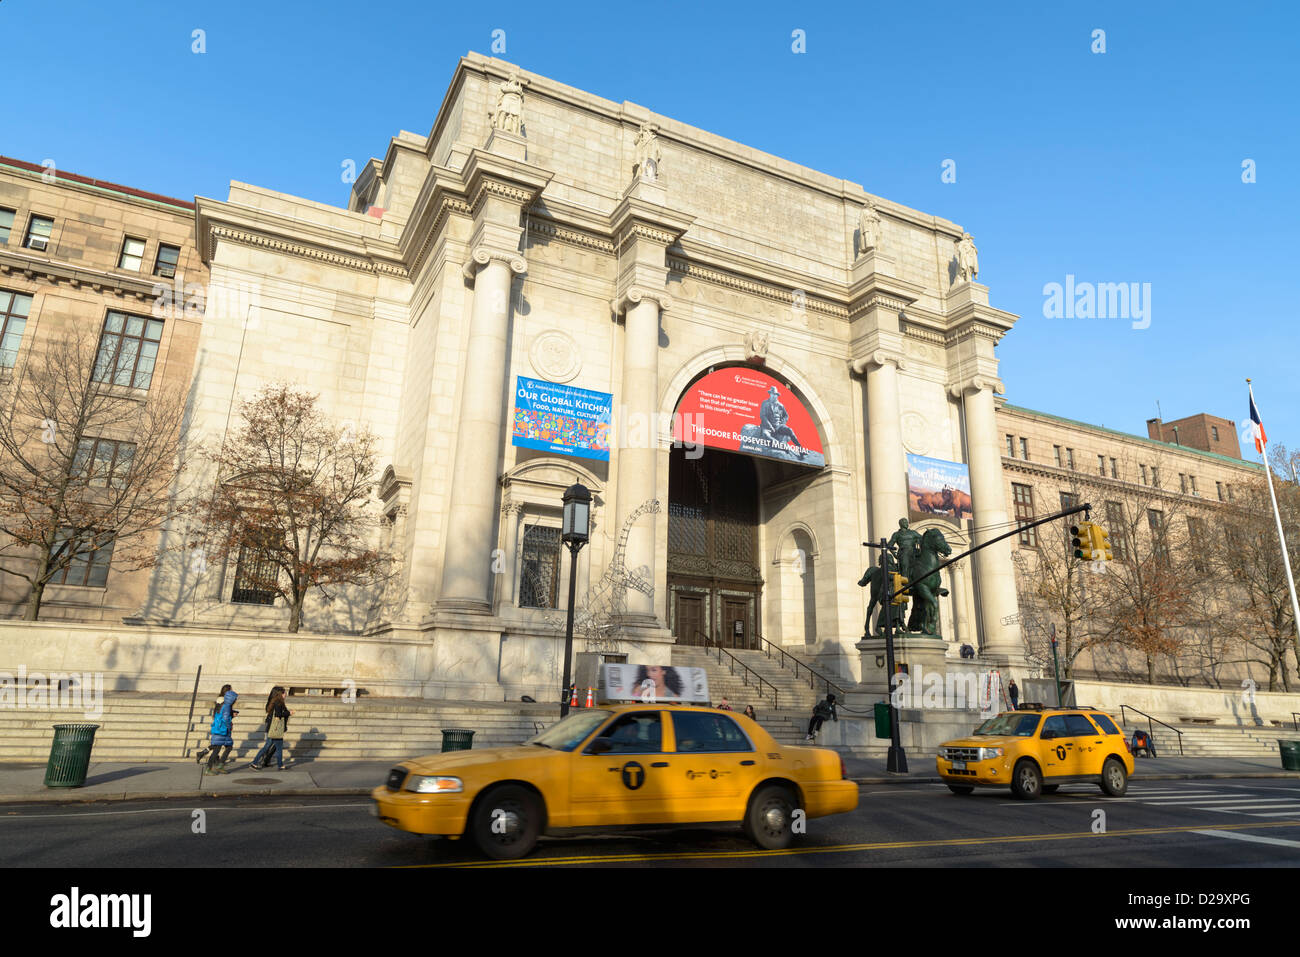 American Museum of Natural History, West Manhattan, New York City, USA - Stock Image